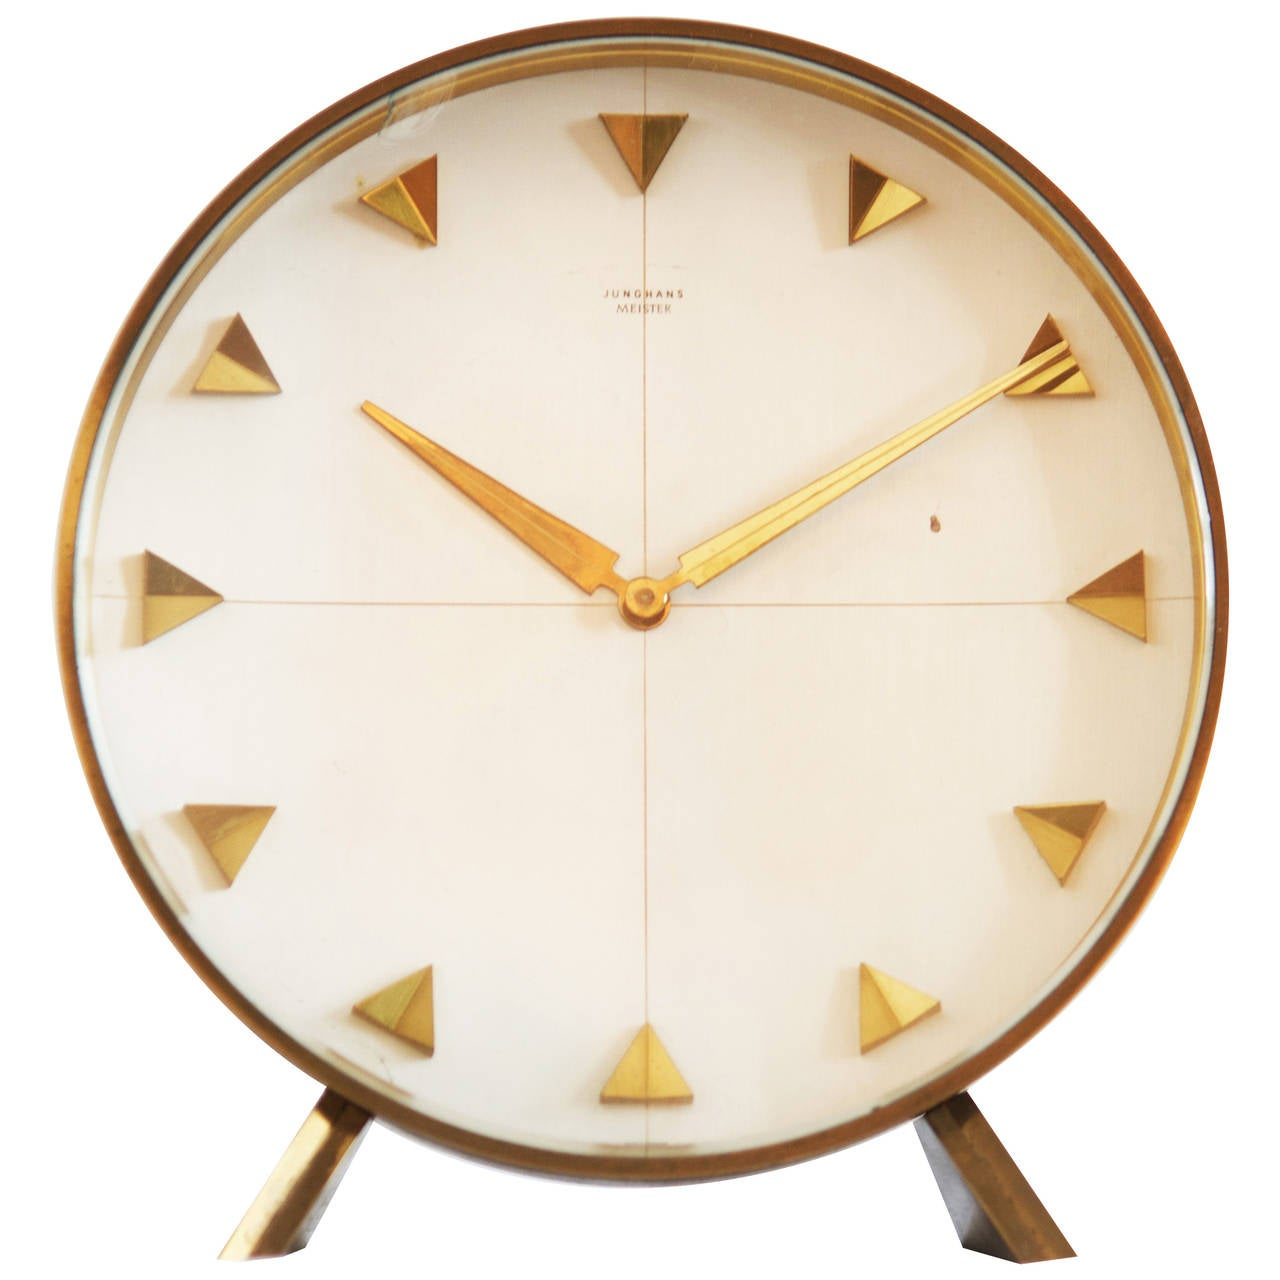 Junghans Table Or Desk Clock From 1960s At 1stdibs